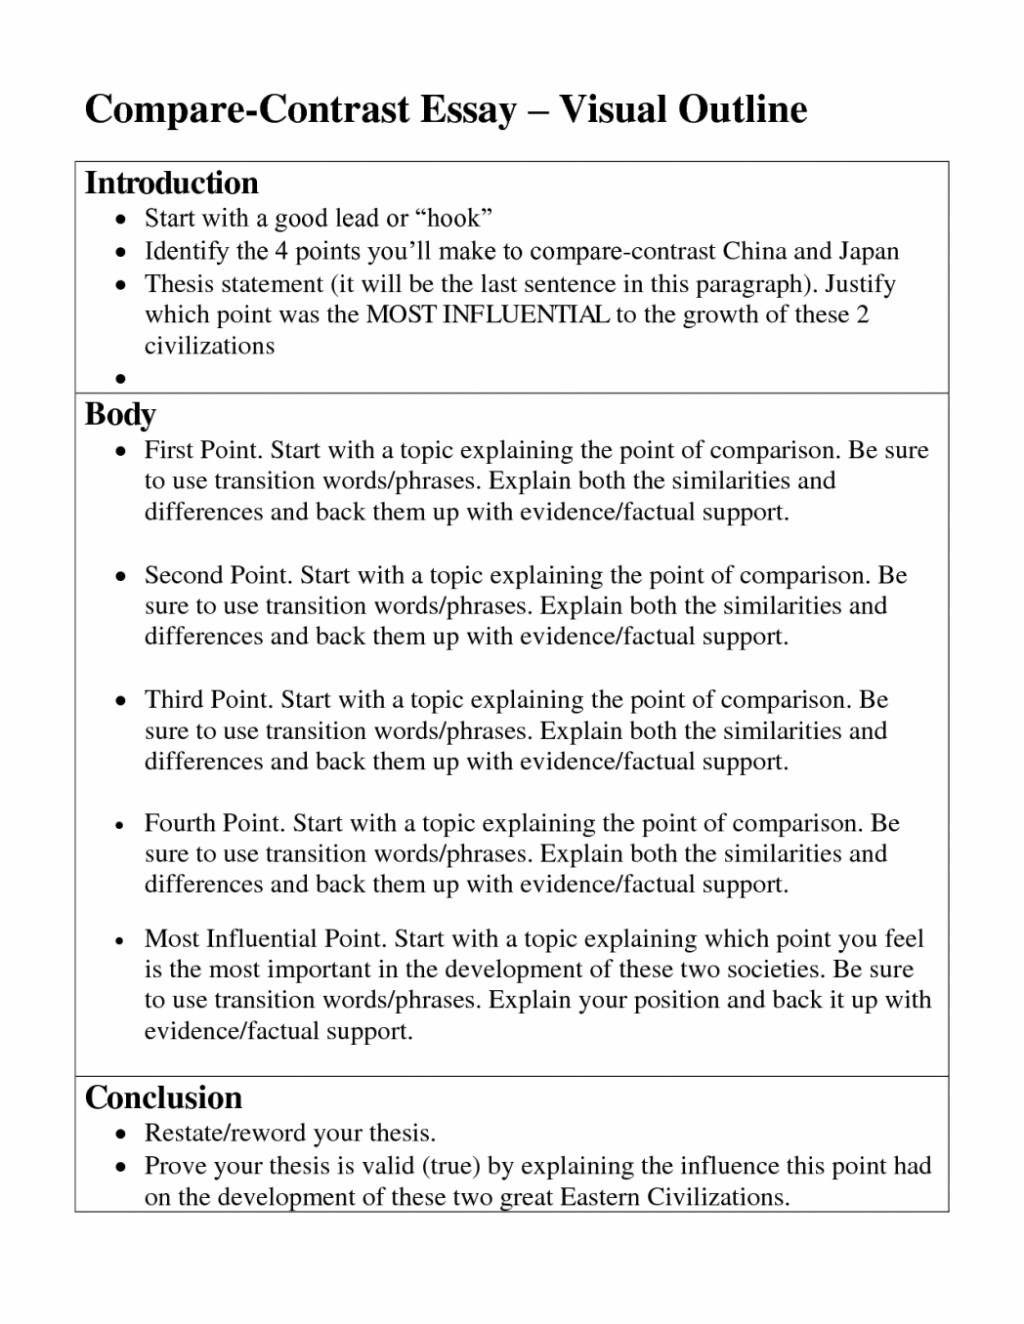 008 Make Money Writing Essays How To Write Essay Outline Template Student For 1048x1356 Best University High School Reddit Large